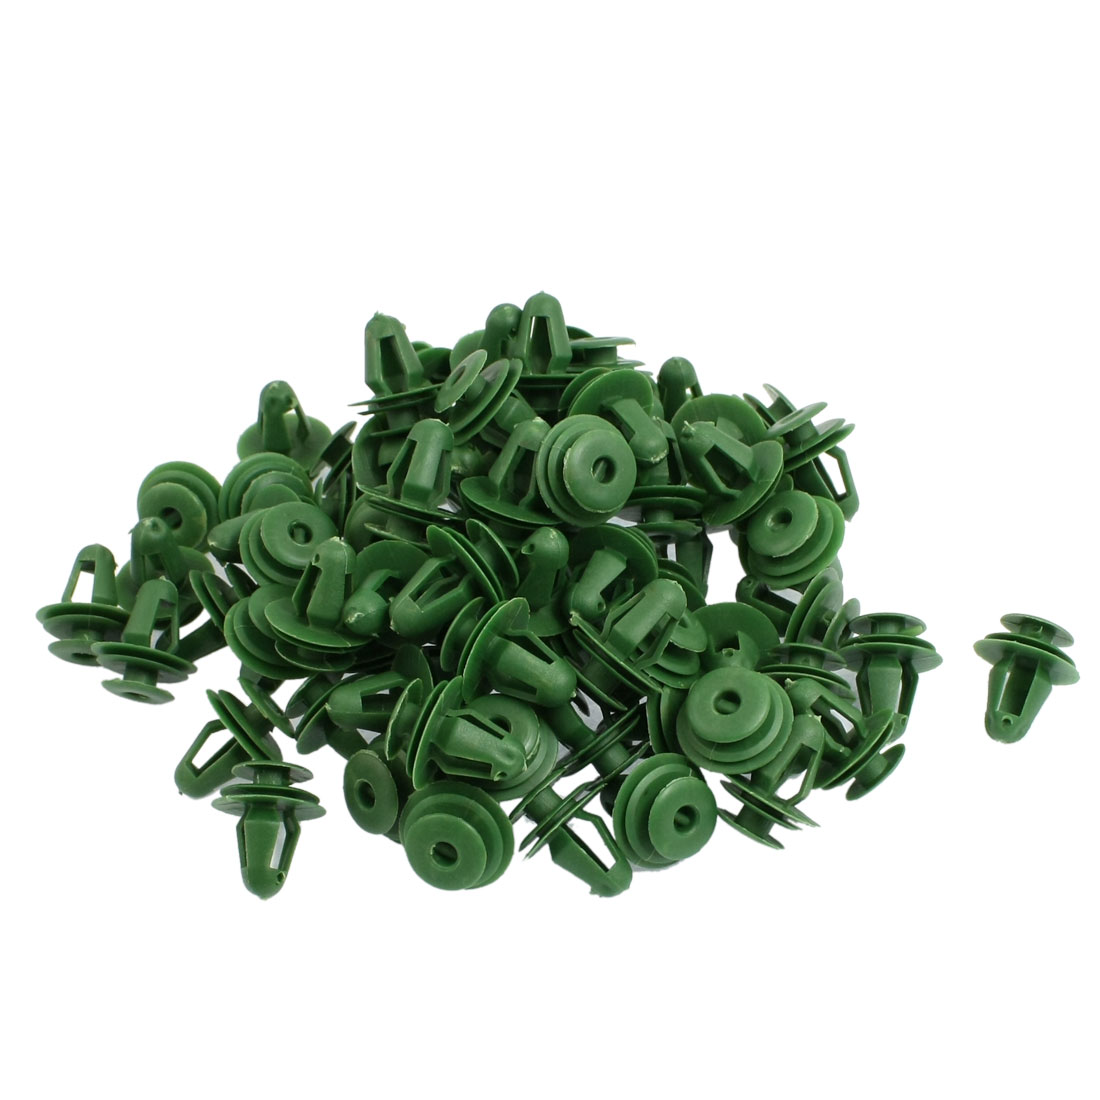 100 Pcs Green Plastic Fender Rivets Fasteners for Vehicle Truck